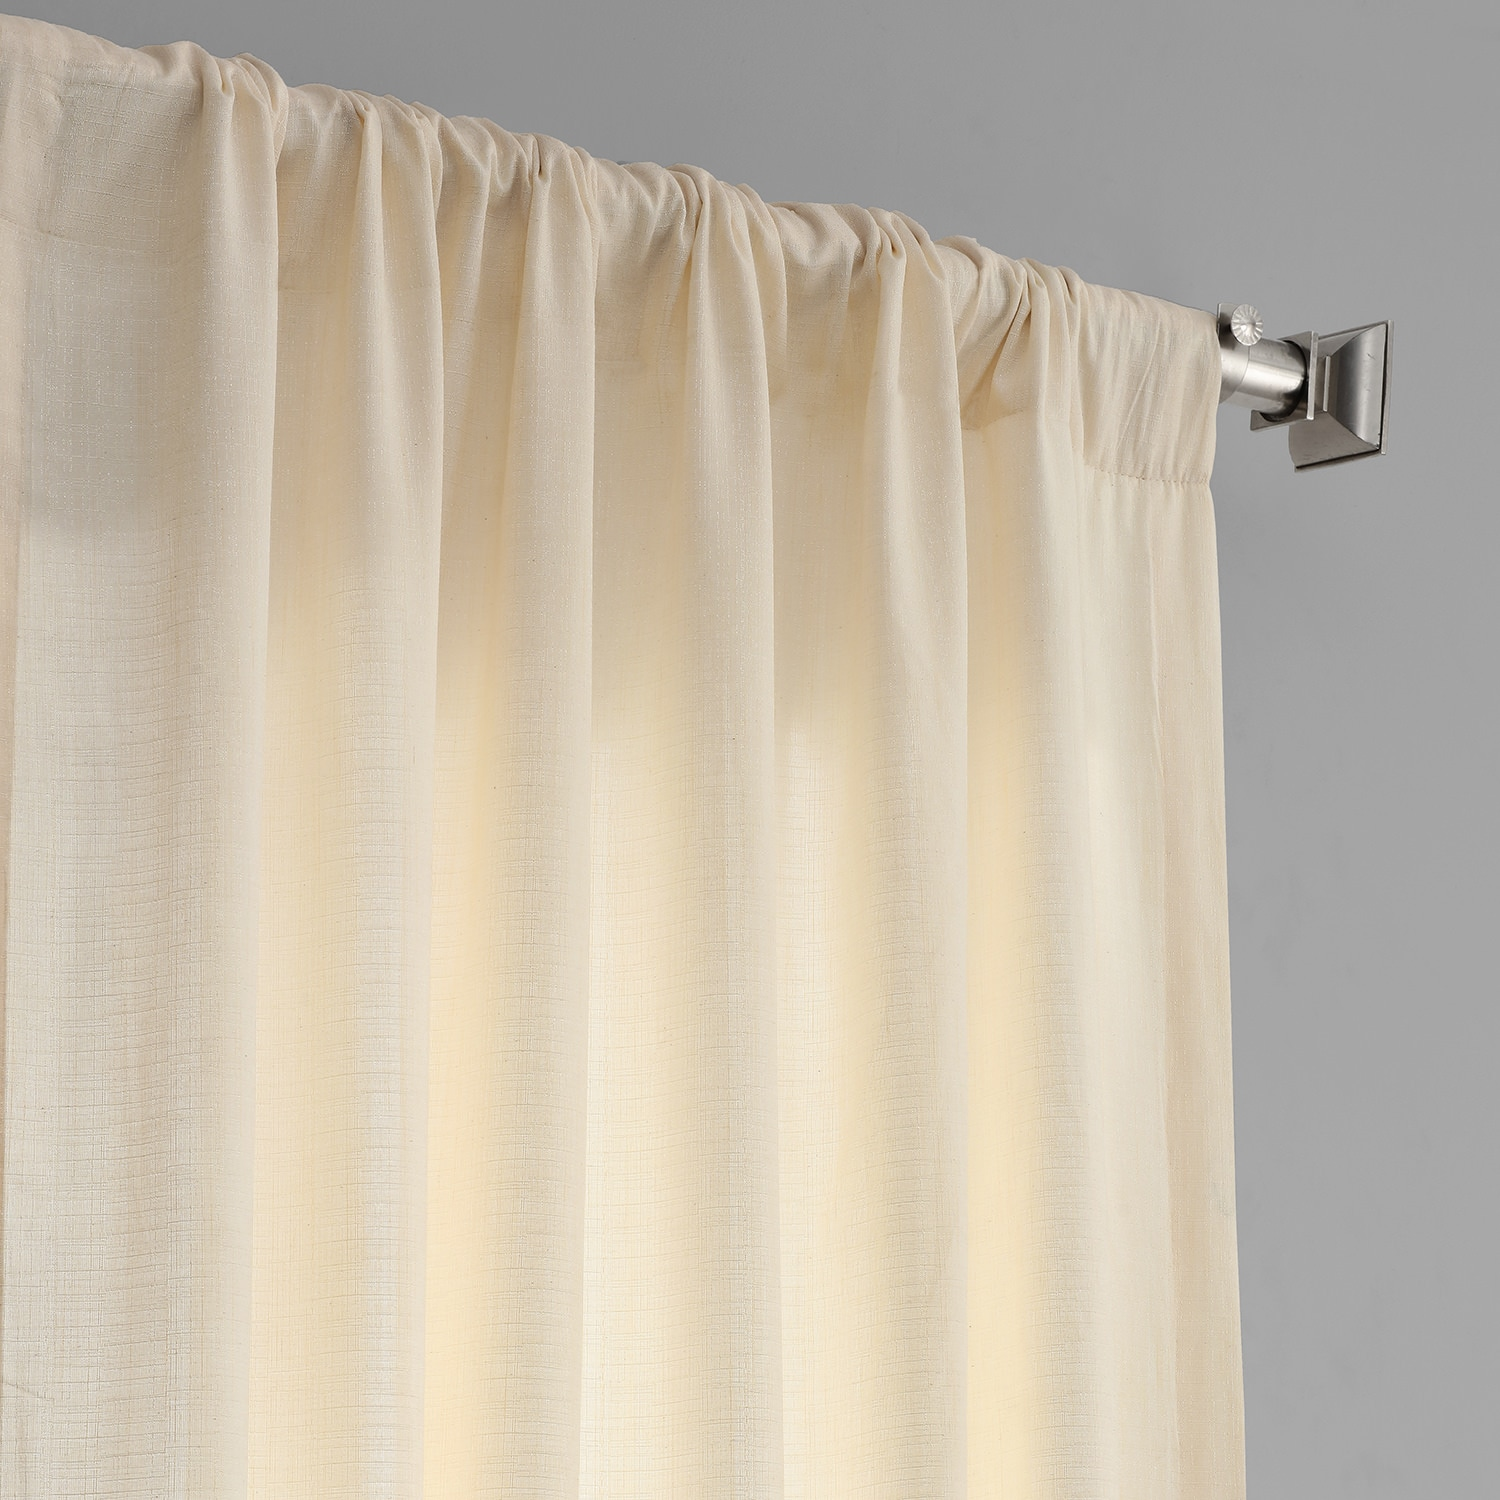 Ivory Designer Shantung Faux Silk Curtains